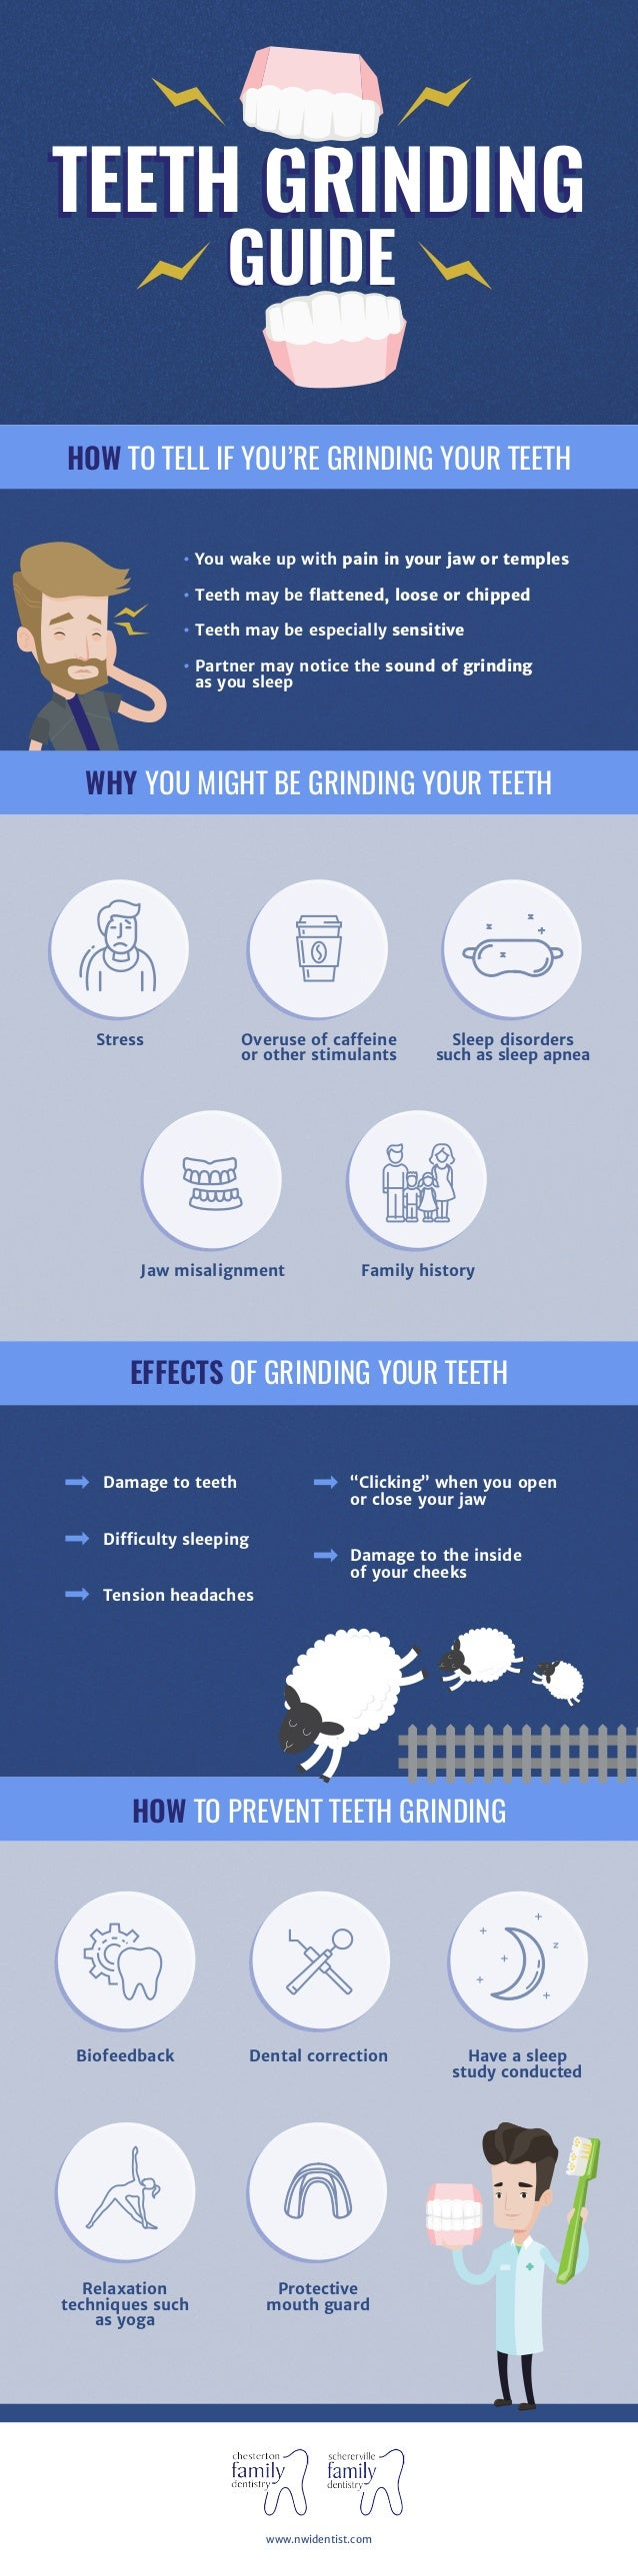 GUIDEGUIDE TEETH GRINDINGTEETH GRINDING WHY YOU MIGHT BE GRINDING YOUR TEETH HOW TO PREVENT TEETH GRINDING EFFECTS OF GRIN...